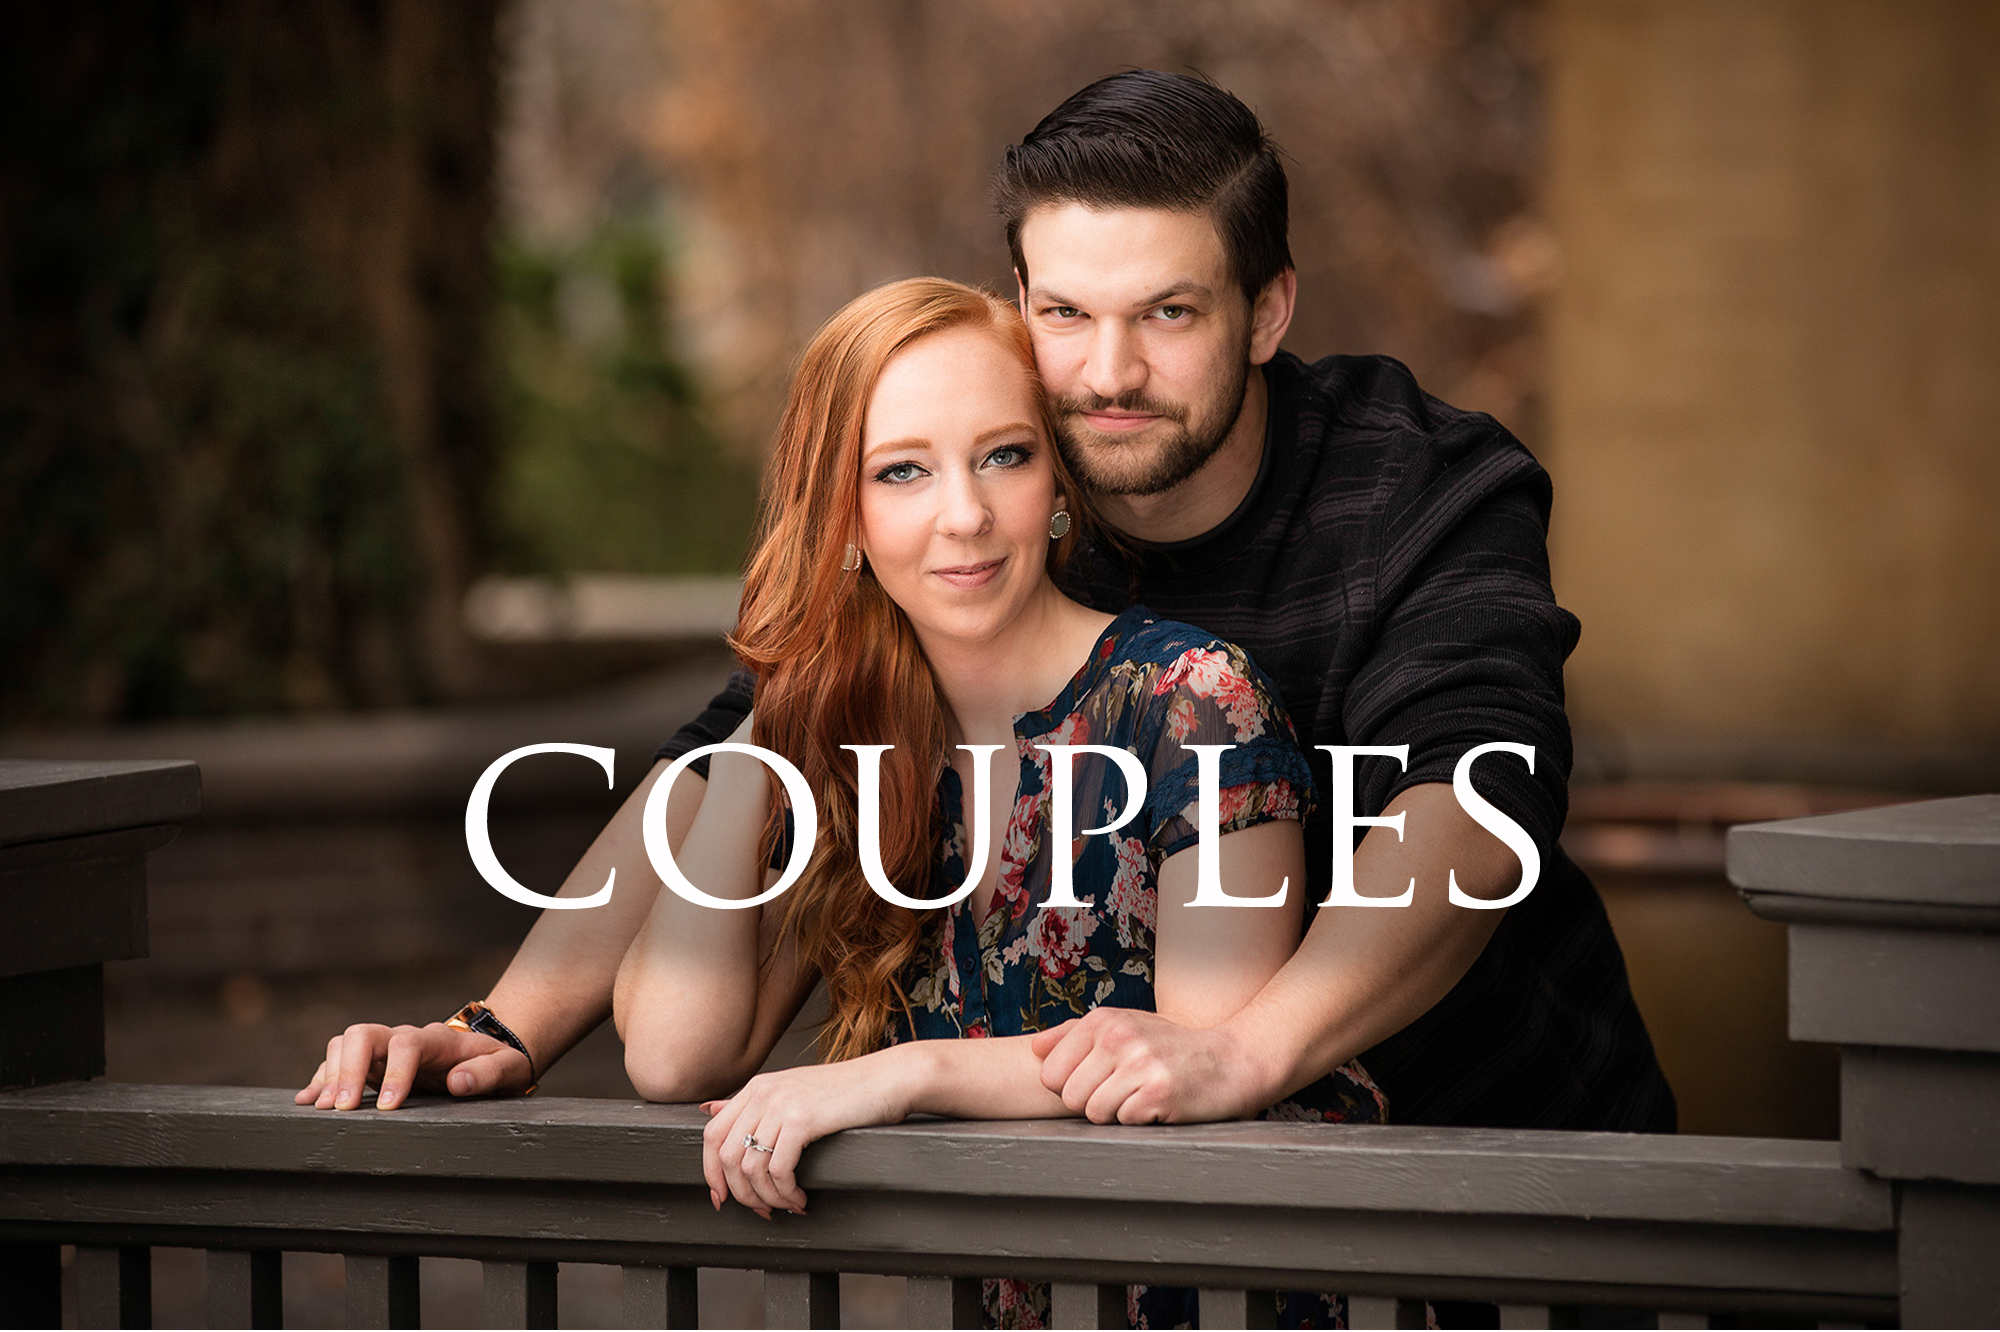 Couple Sessions From $95